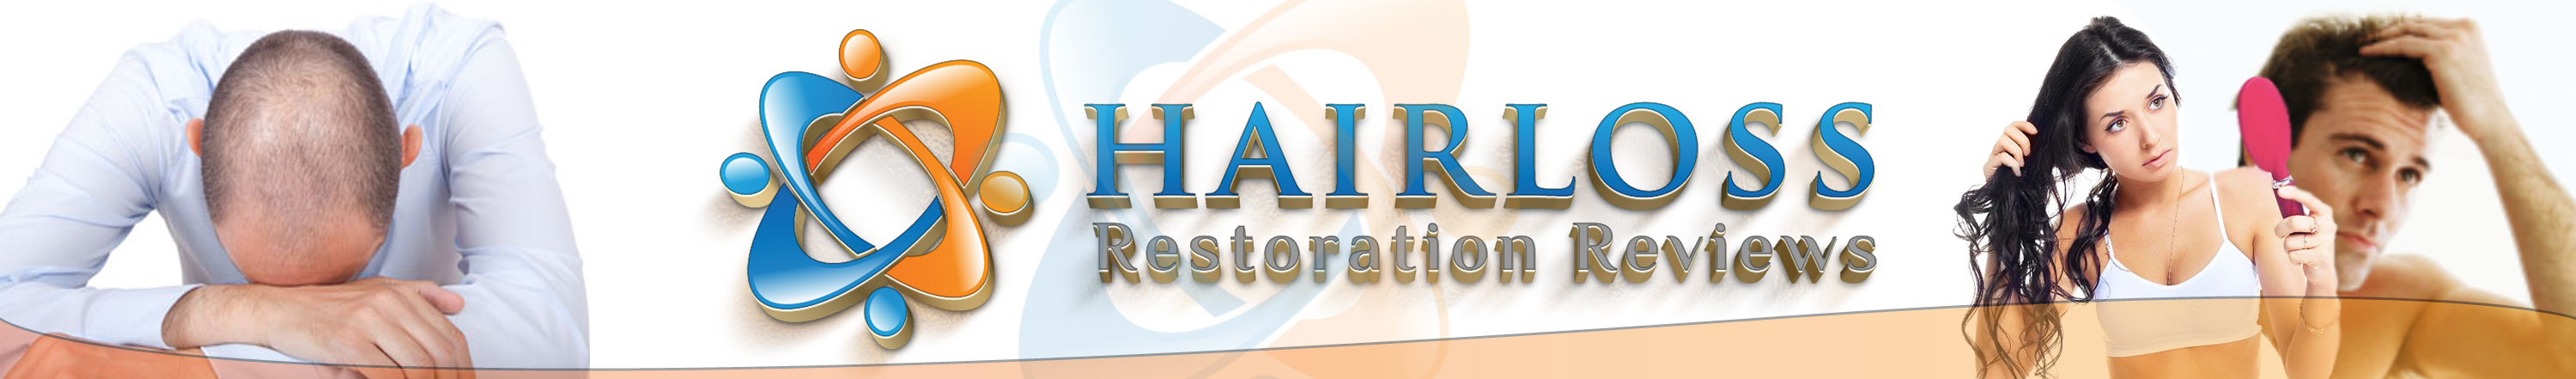 Hair loss restoration reviews,Hair restoration reviews,Hair loss treatment reviews